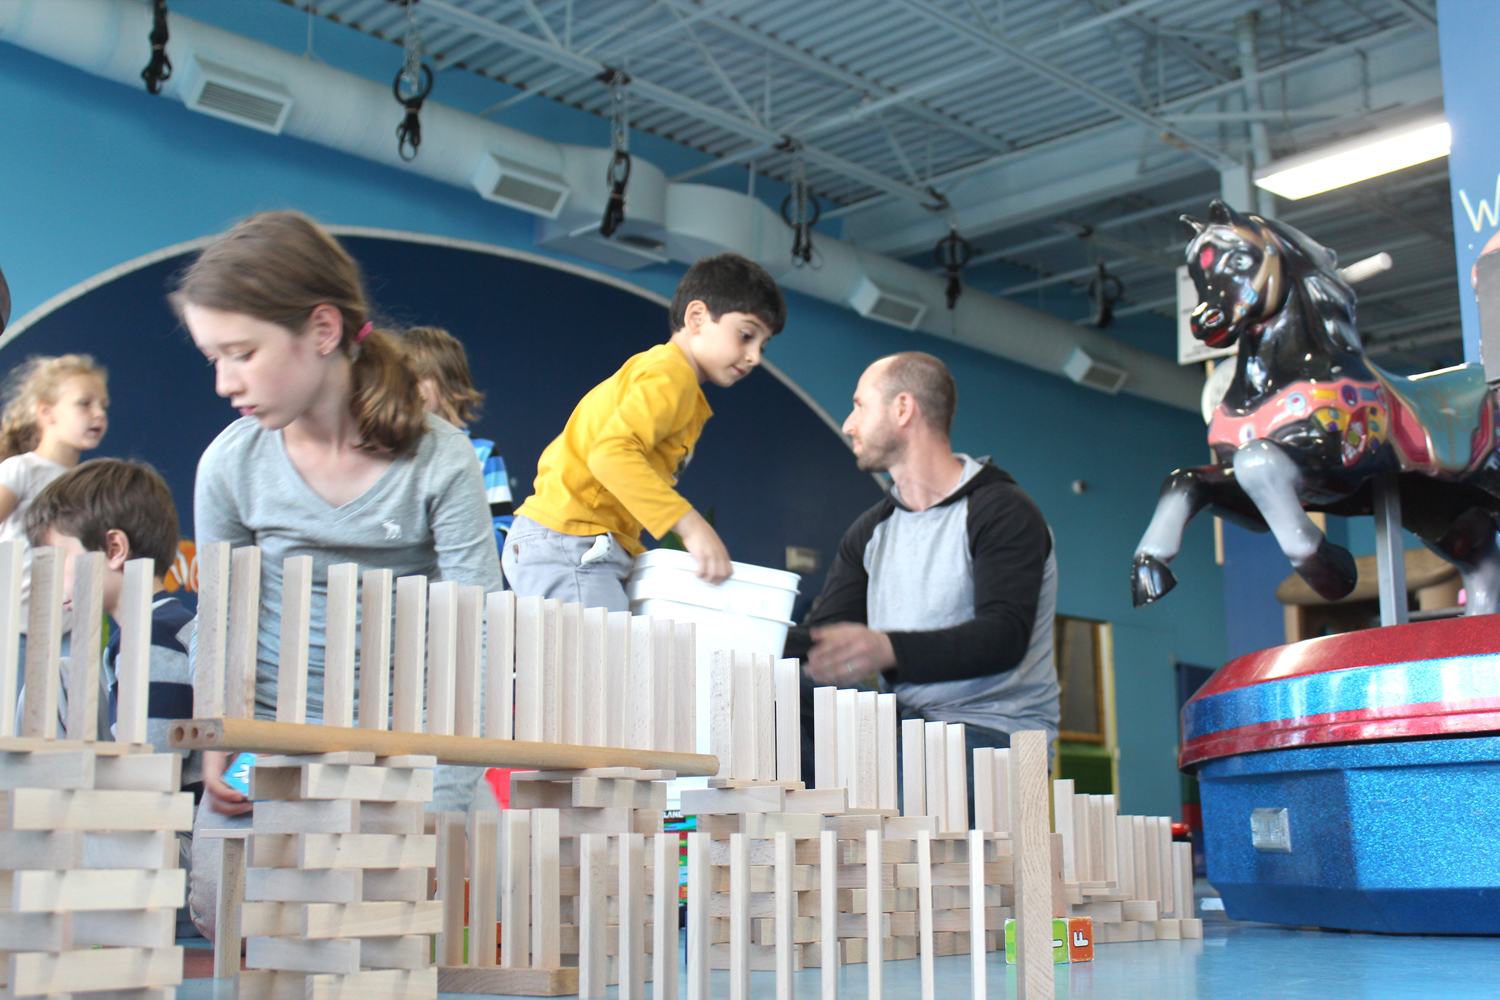 Pa Day Camps Toronto Indoor Playground Birthday Party